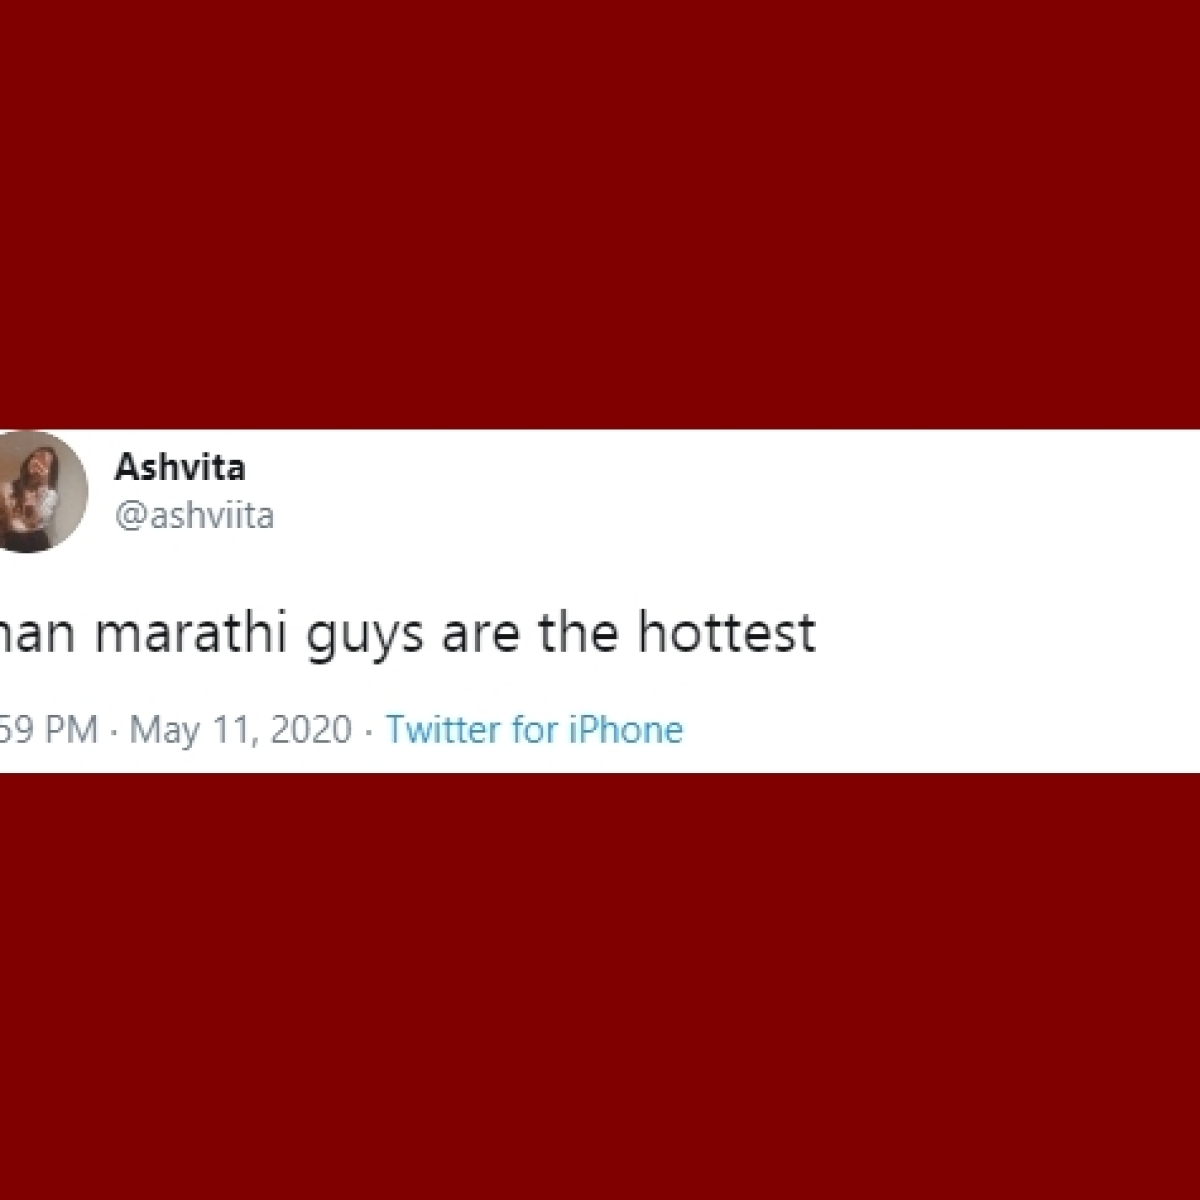 Twitter user says 'Marathi guys are the hottest', internet has a meltdown